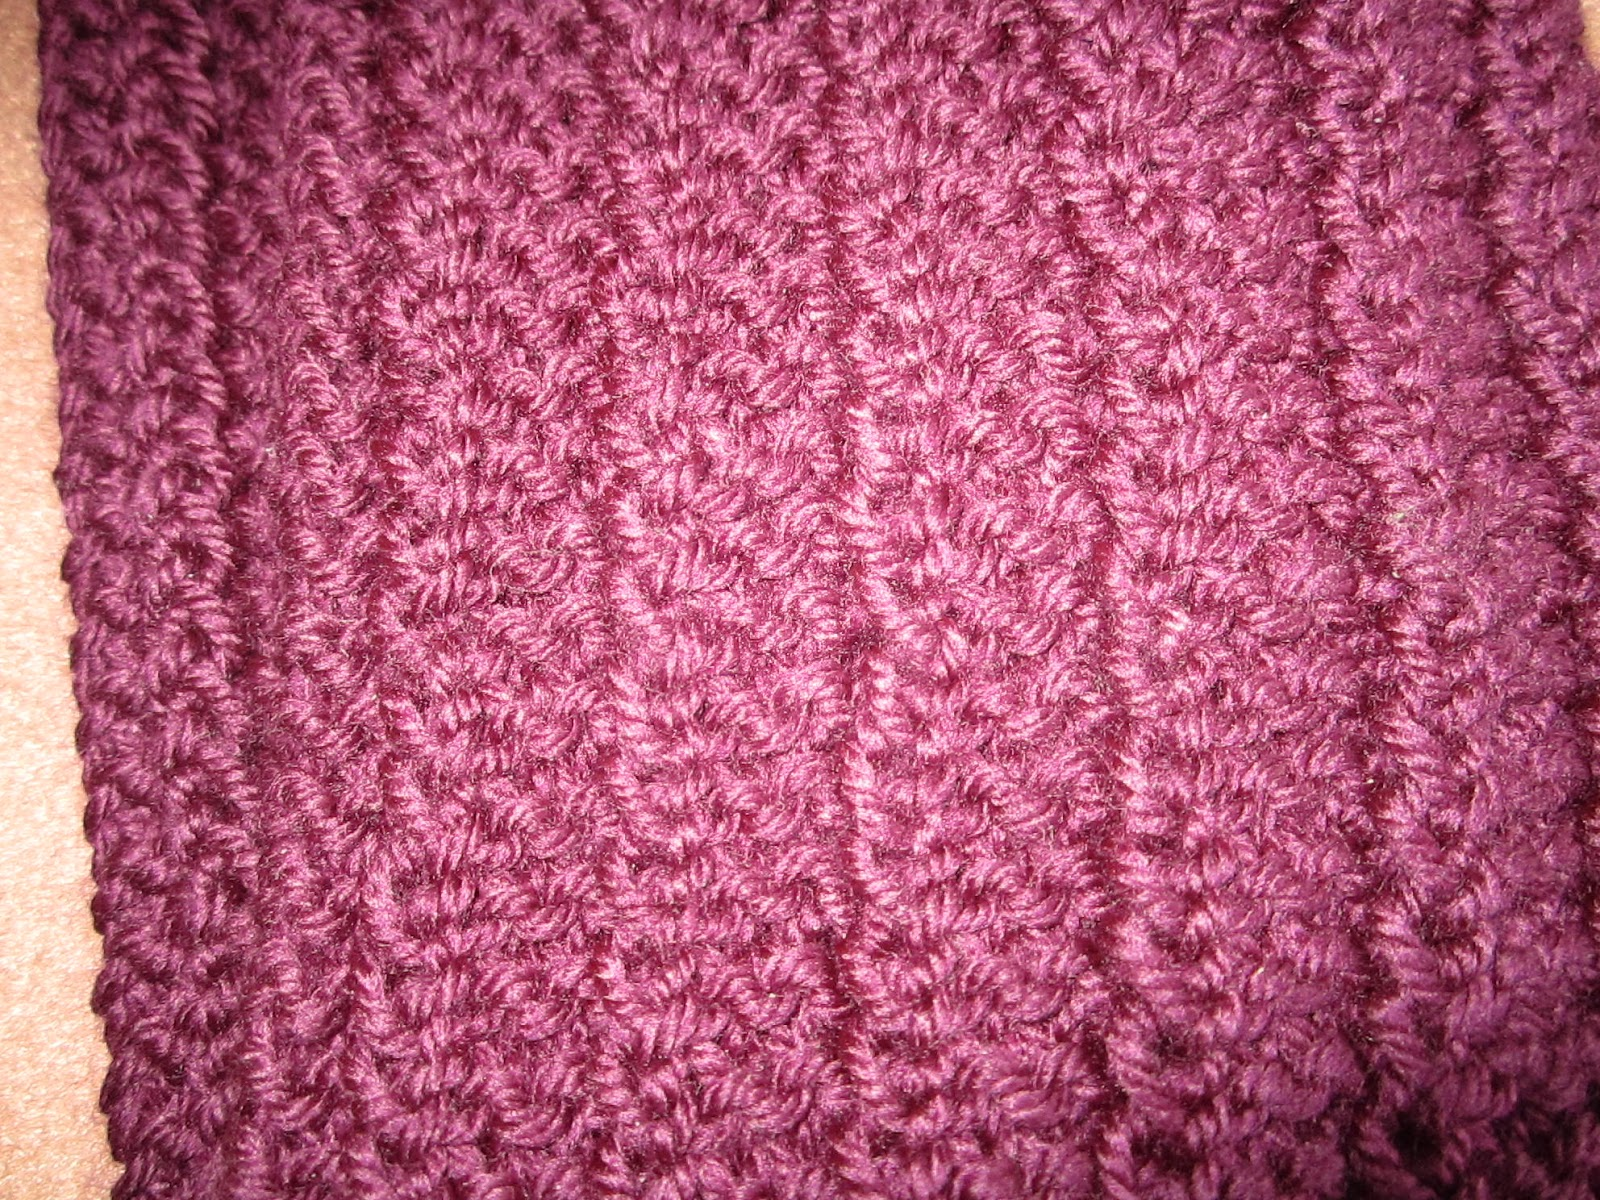 Knit Scarf Pattern Size 5 Needles : gloriastitches: Knitted Scarf for a Gift